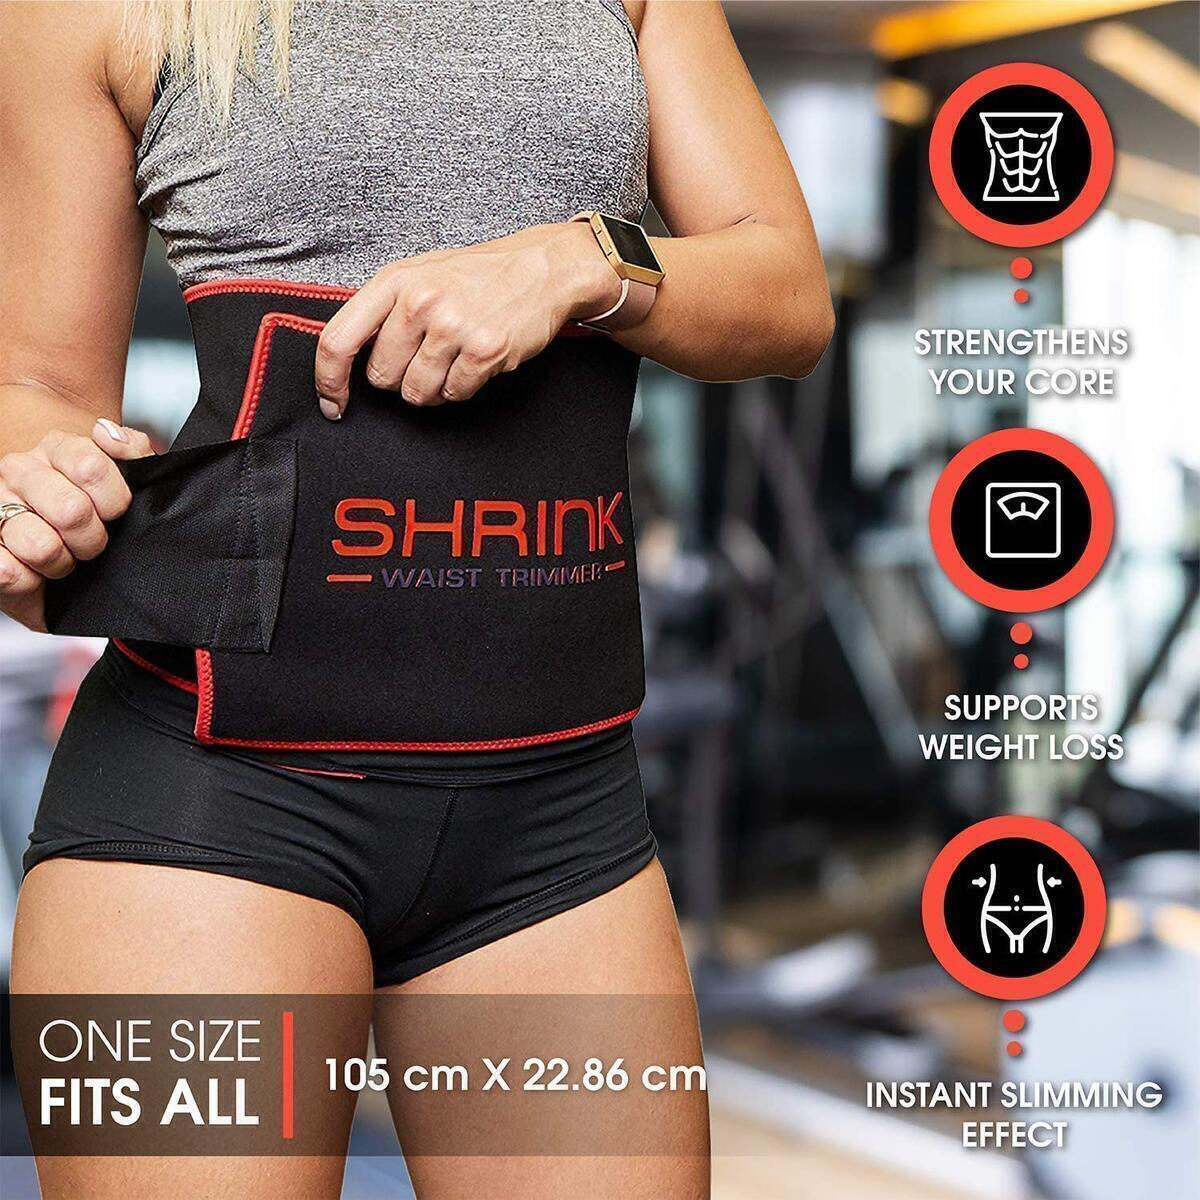 Shrink Workout Waist Trimmer Belt for Men and Women – Waist Cincher Trainer and Body Shaper Strengthens Your Core, Supports Weight Loss and Provides Instant Slimming Effect